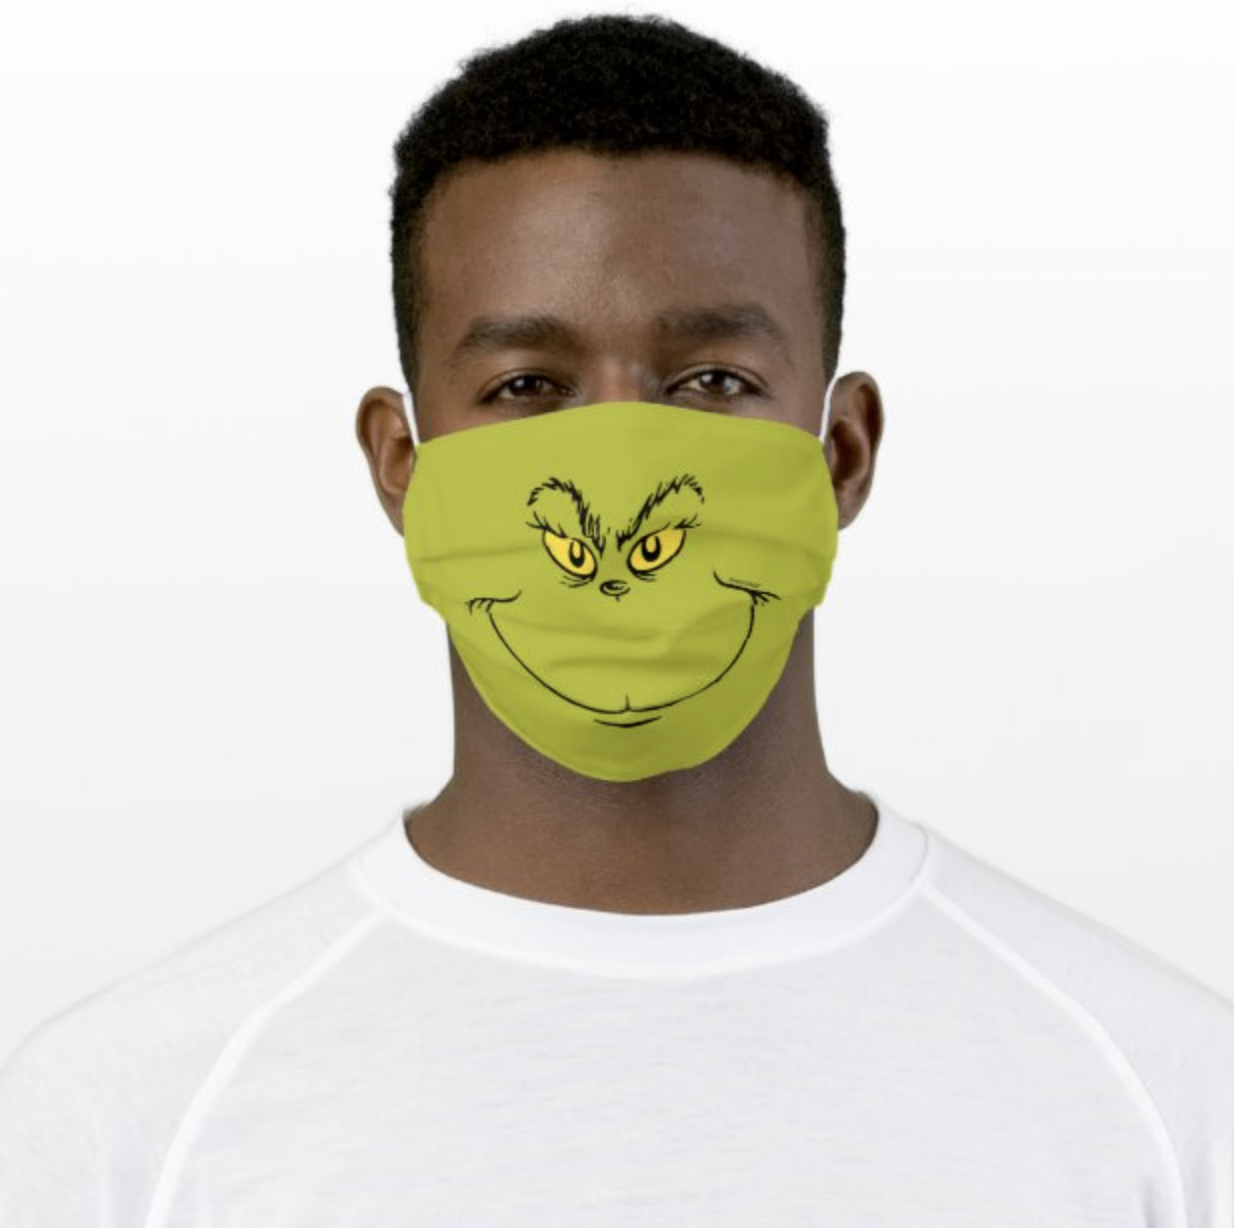 Model wearing face mask featuring the Grinch's face